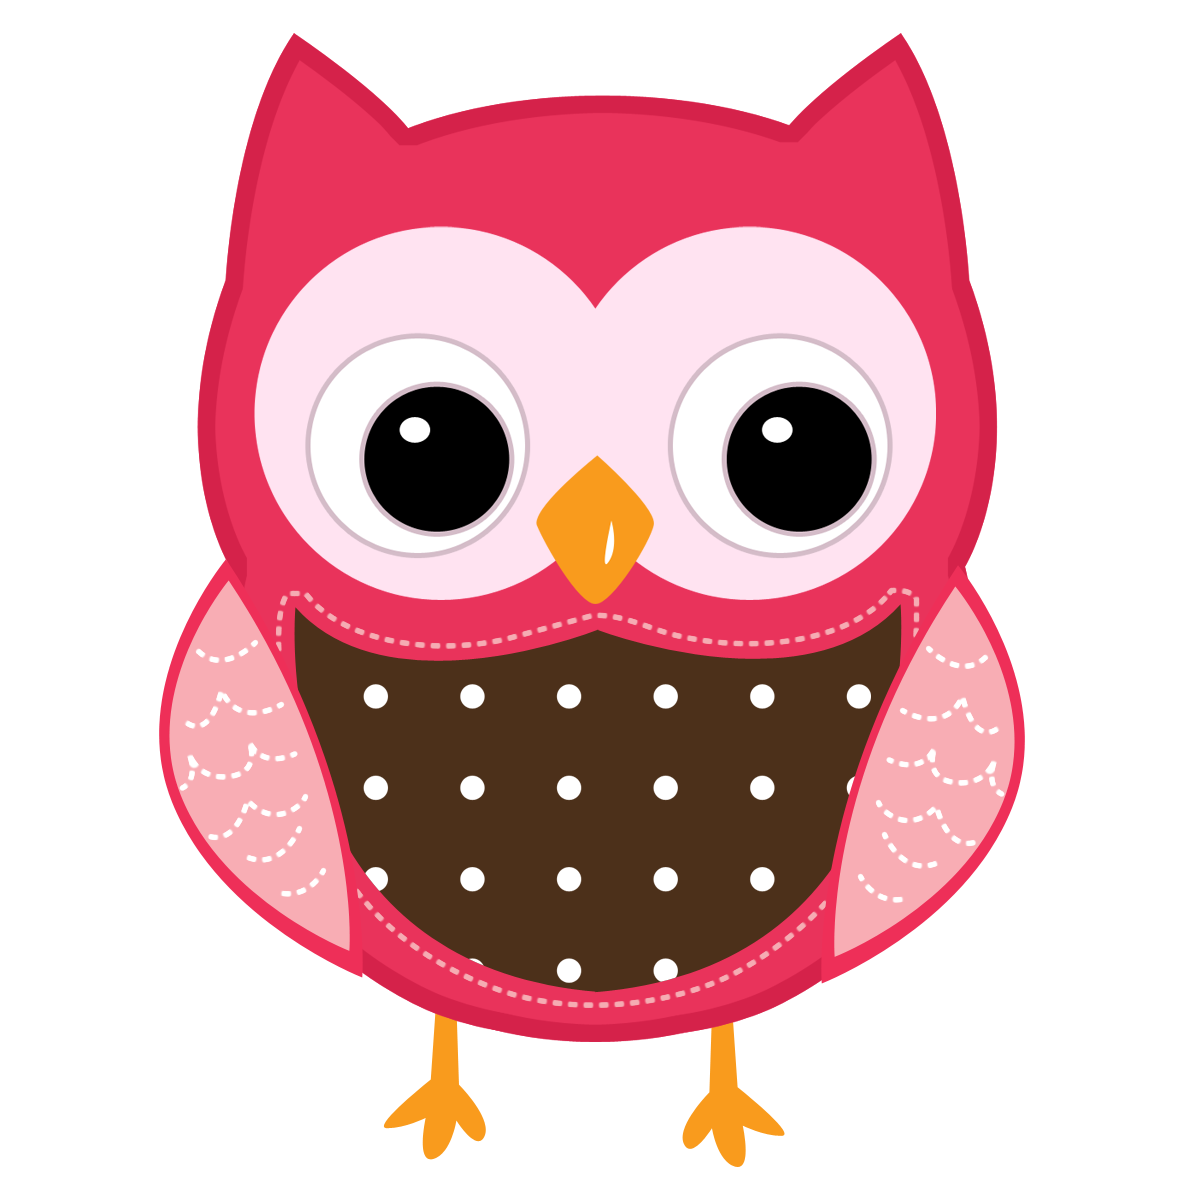 Free Cartoon Owl Face, Download Free Clip Art, Free Clip Art.